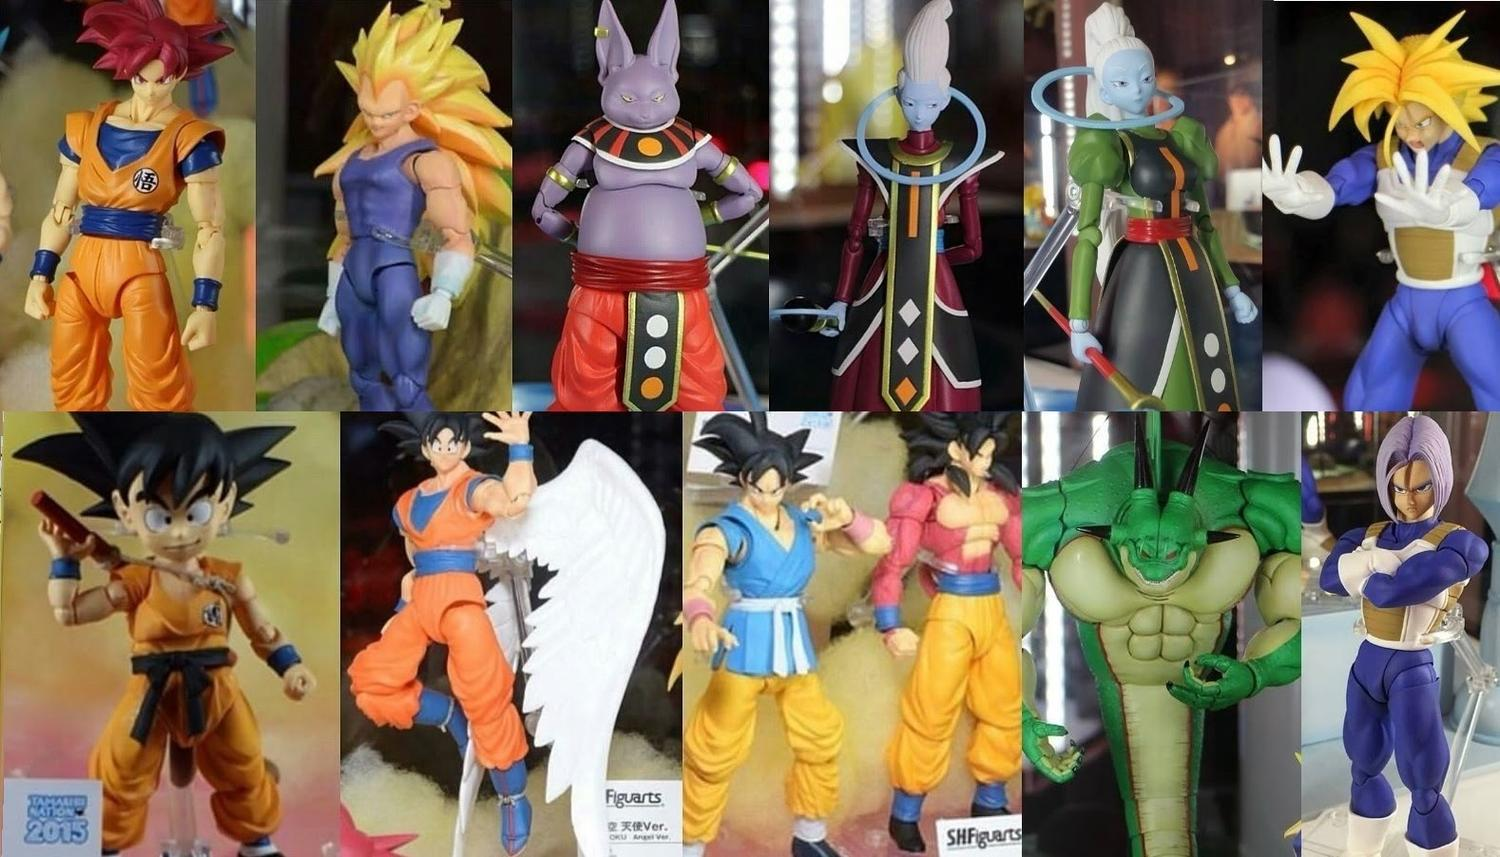 New DBZ SH Figuarts Gohan and Cell-dbz-shf-upcoming.jpg